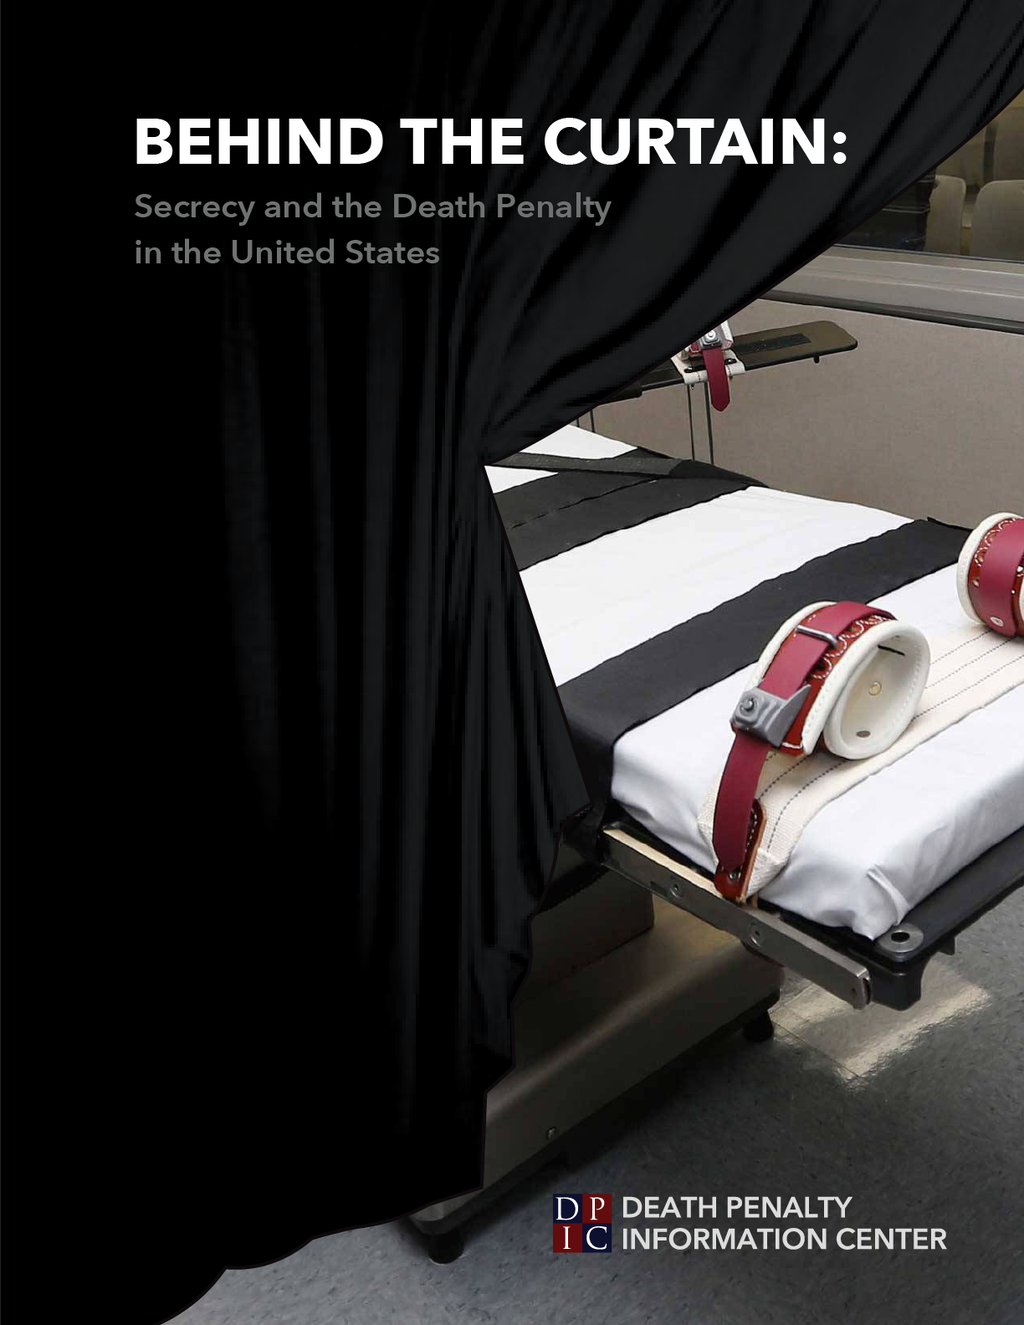 Press Release-Behind the Curtain: Secrecy and the Death Penalty in the United States